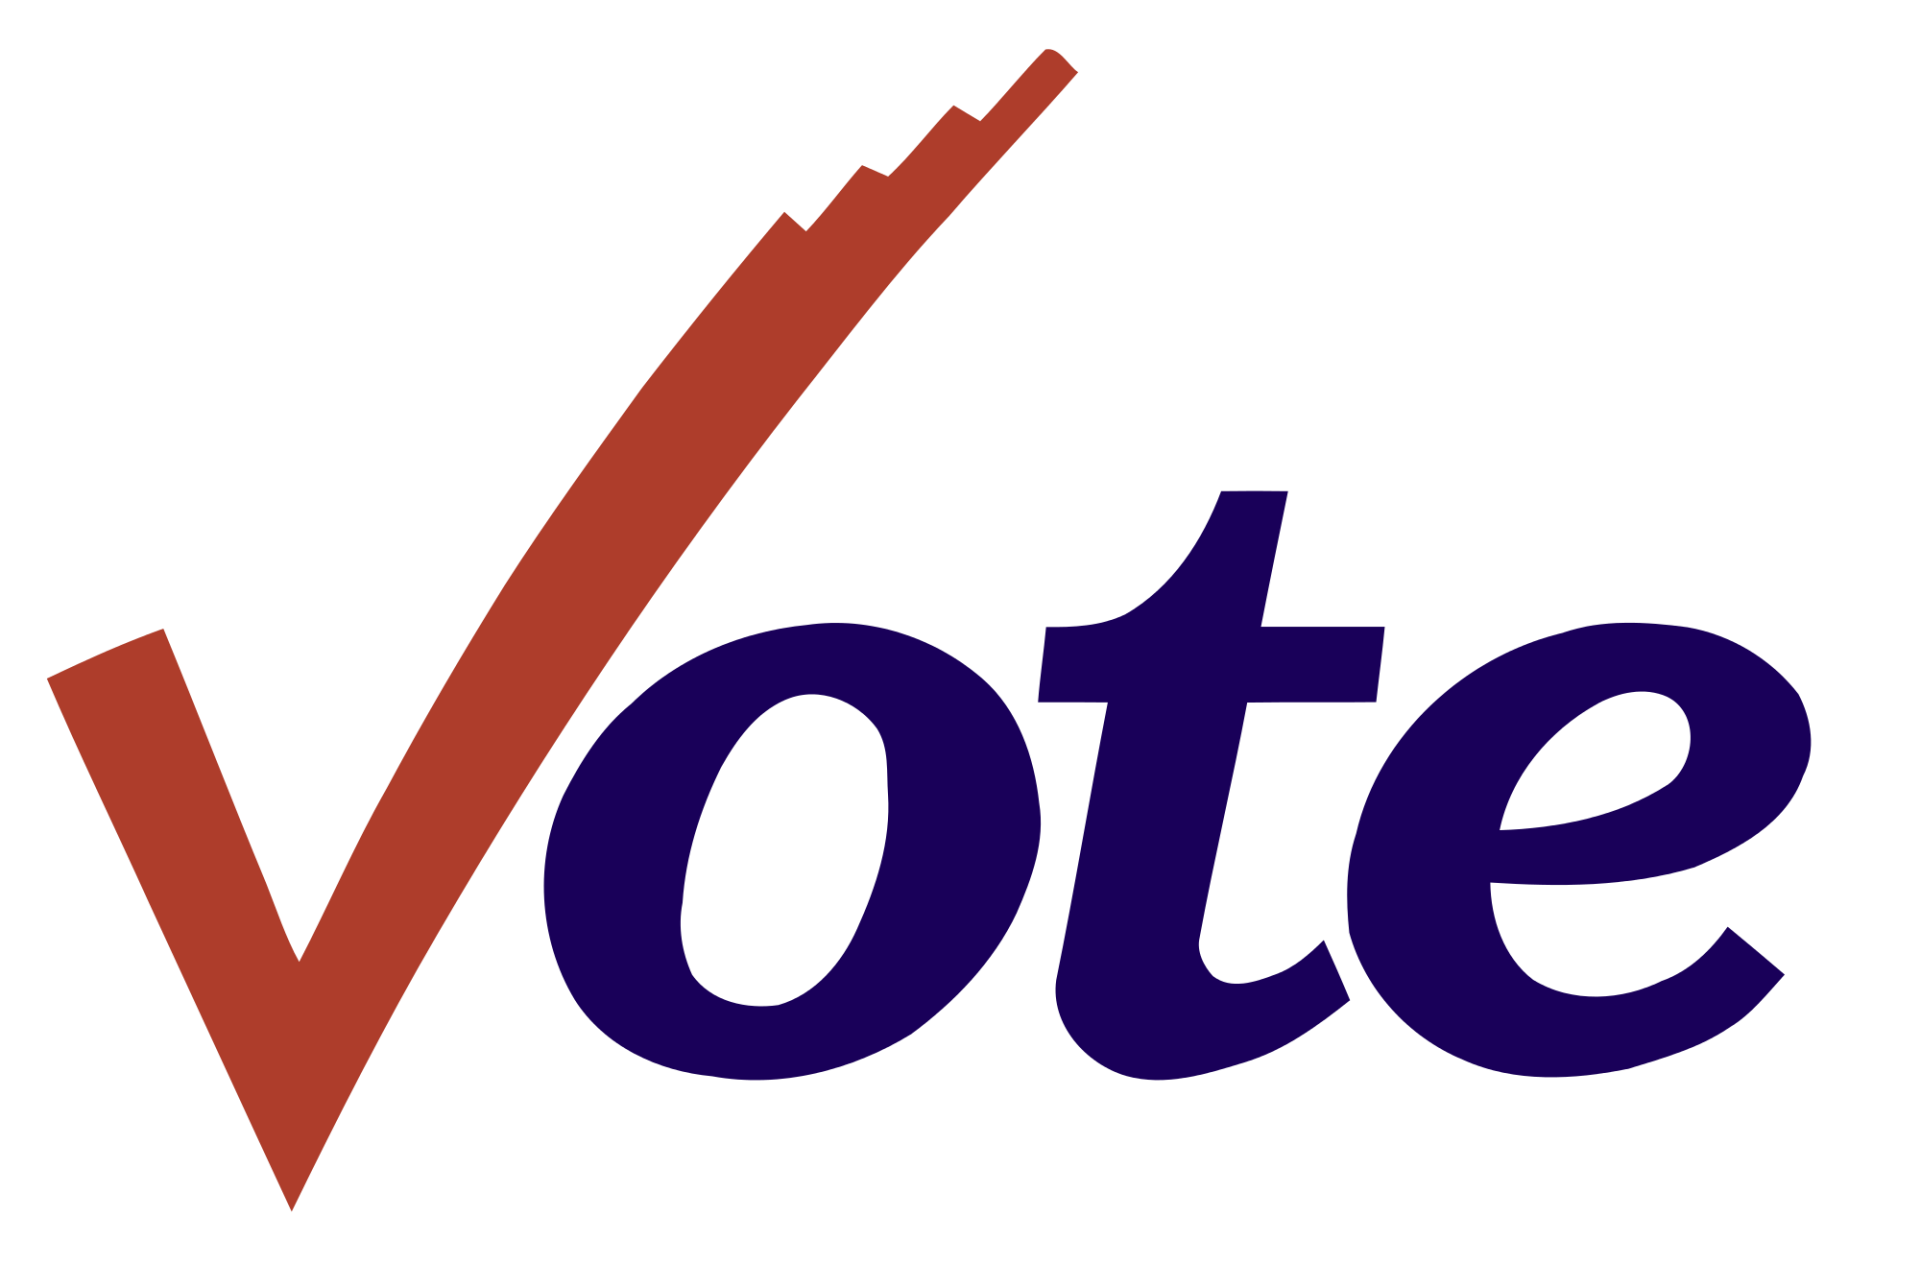 Nevada secretary of state. Voting clipart primary election